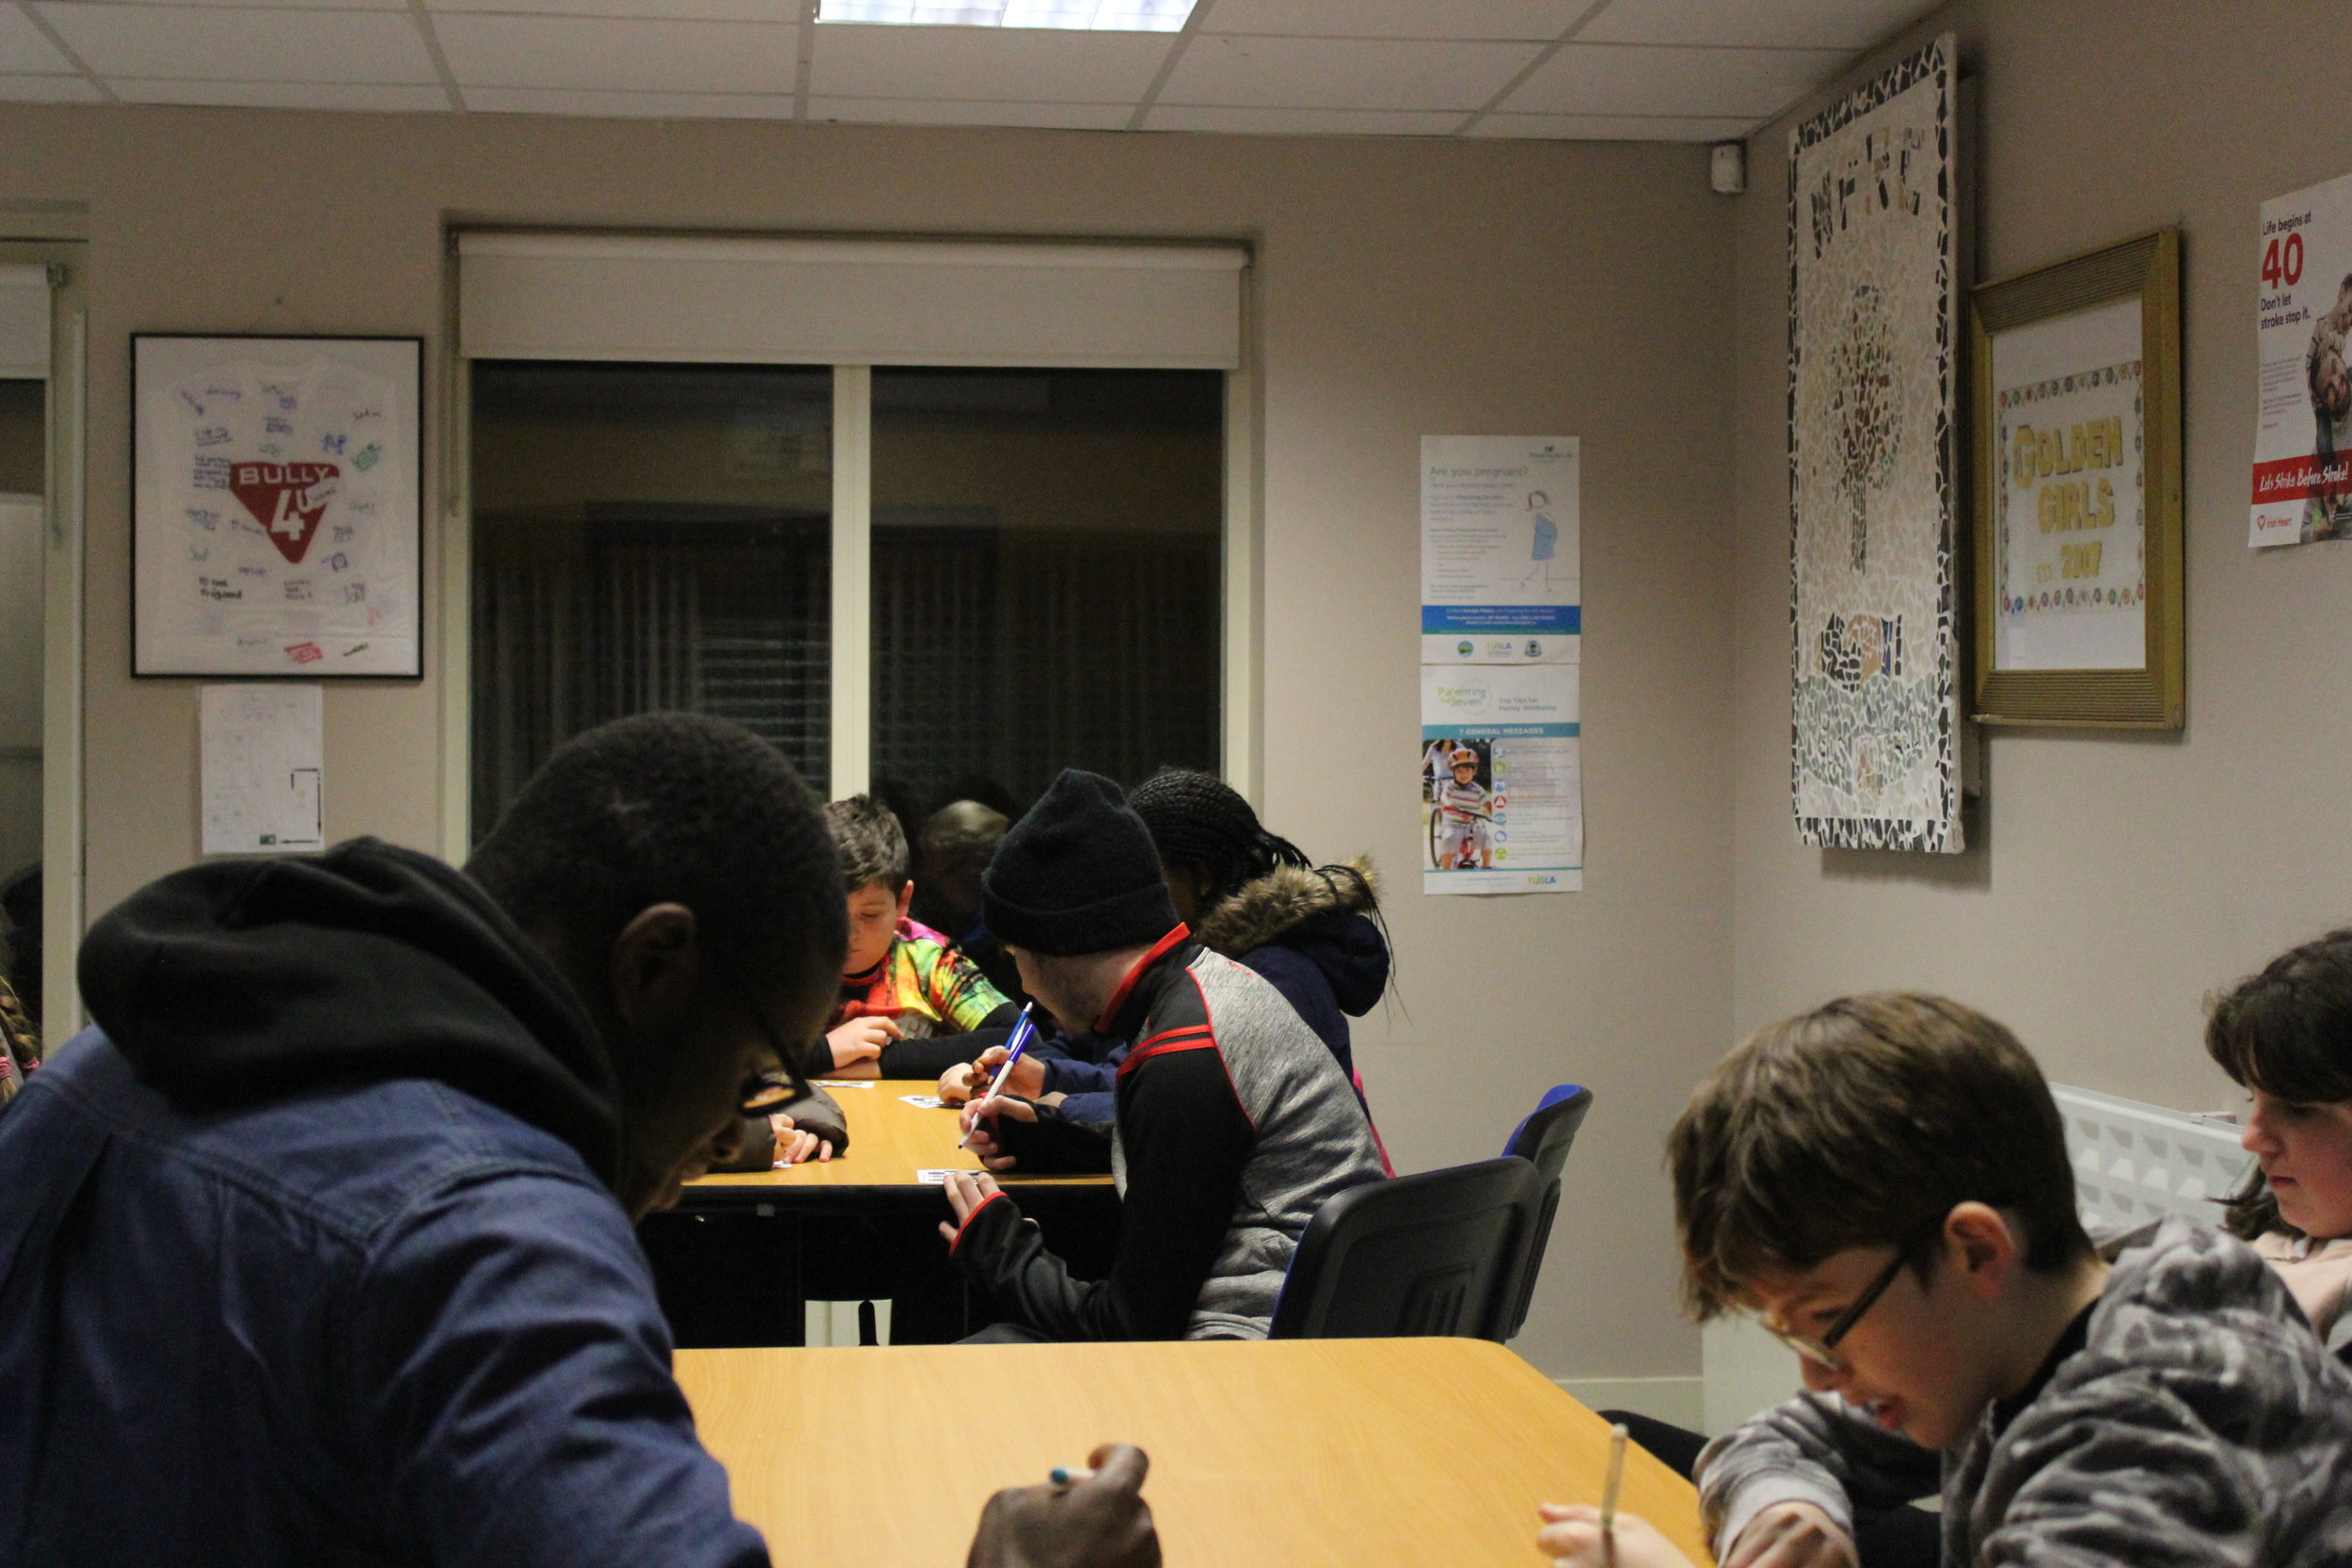 Homework Club - The Homework Club runs on Tuesday or Wednesday for children from third, fourth, fifth and sixth class.The club offers a safe, friendly and supportive environment for young people to develop a positive attitude towards learning and homework, as well as having fun!